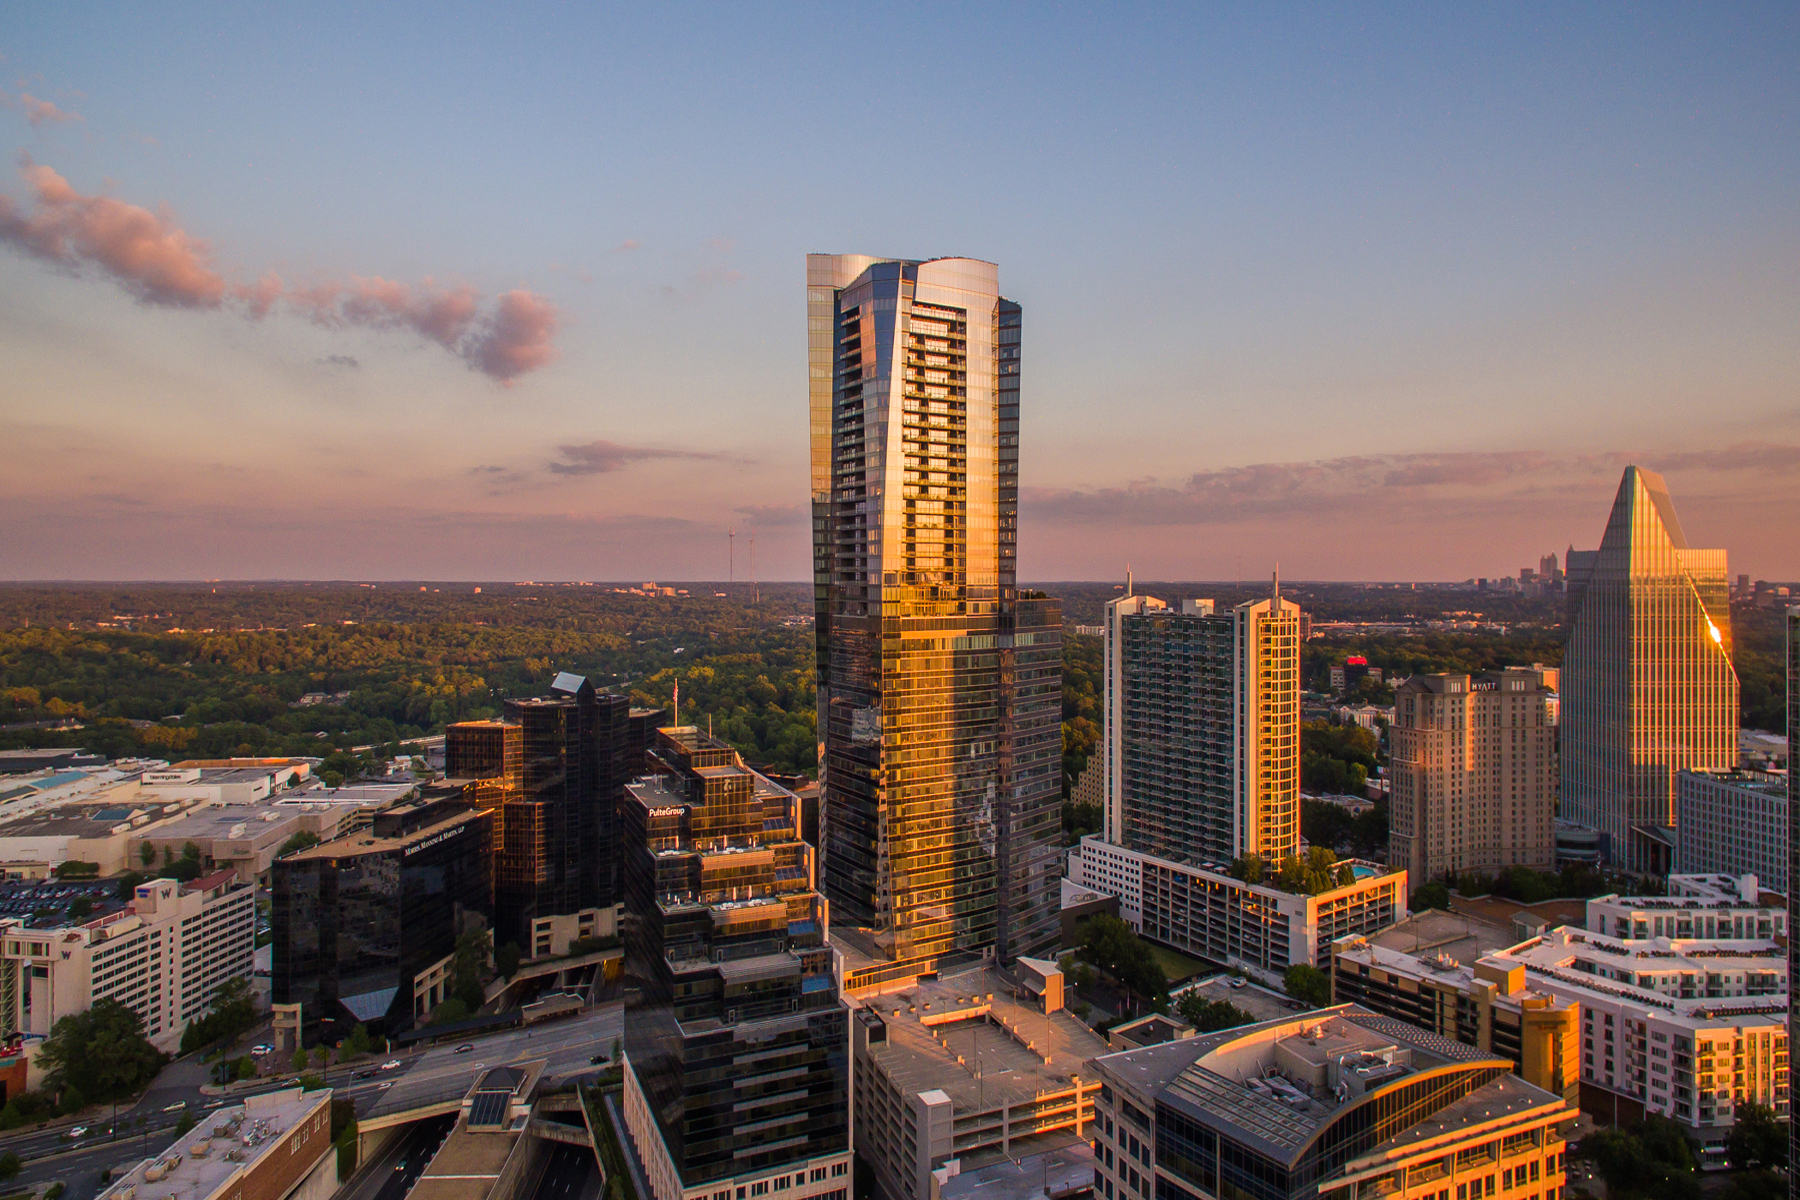 Кондоминиум для того Продажа на Premier Plan Boasting Panoramic Views 3344 Peachtree Road NE Unit 4601 Atlanta, Джорджия 30326 Соединенные Штаты